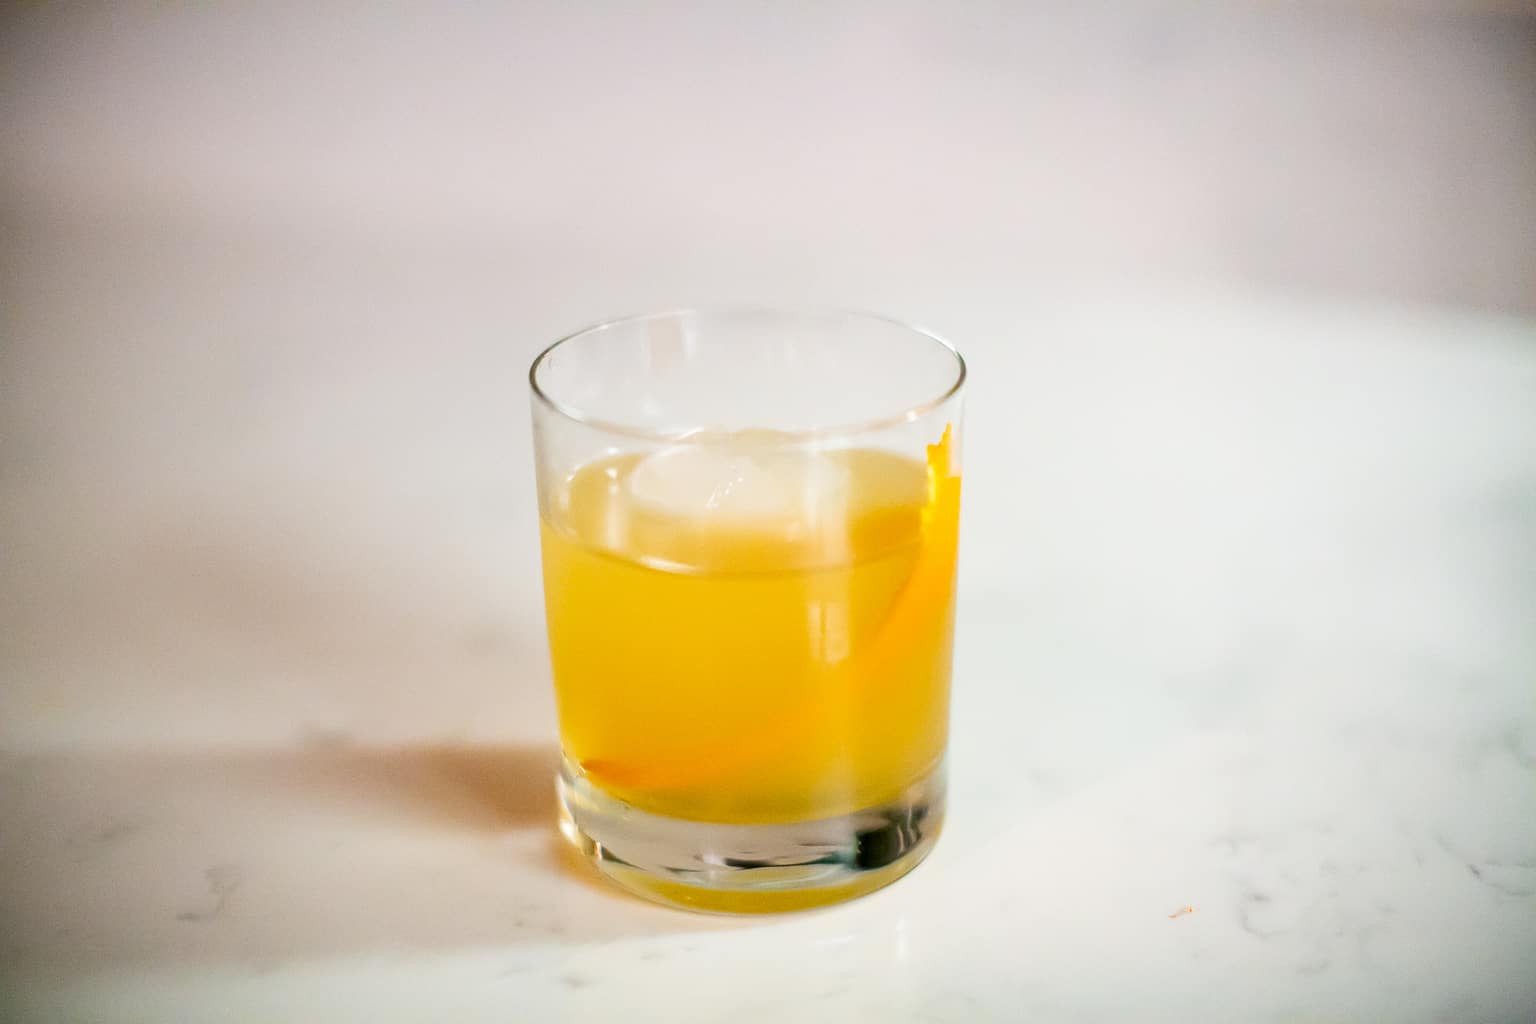 Simple Lemon Ginger Smoked Tequila Cocktail Recipe